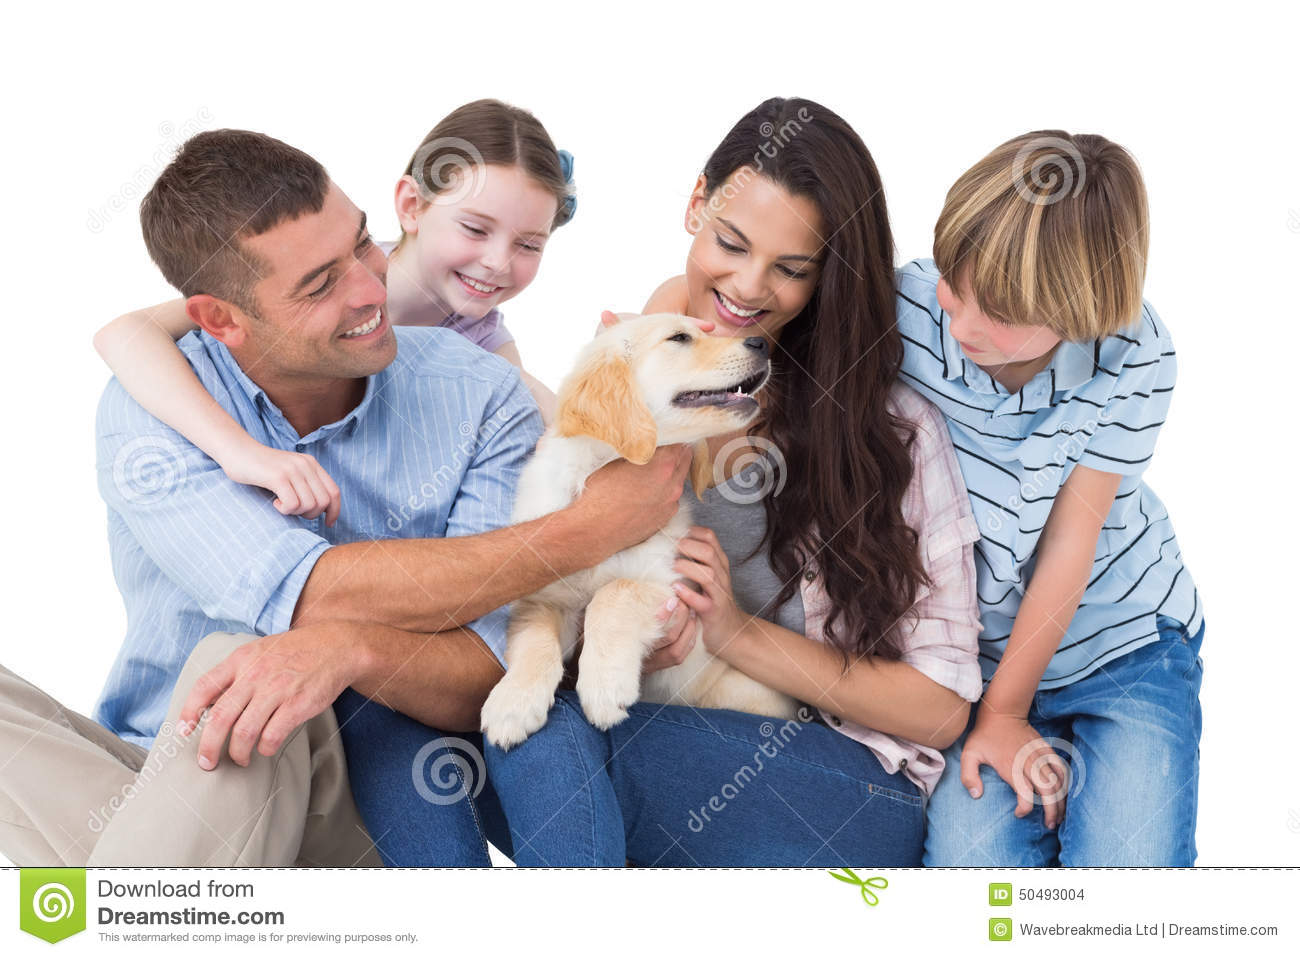 Family of four playing with dog